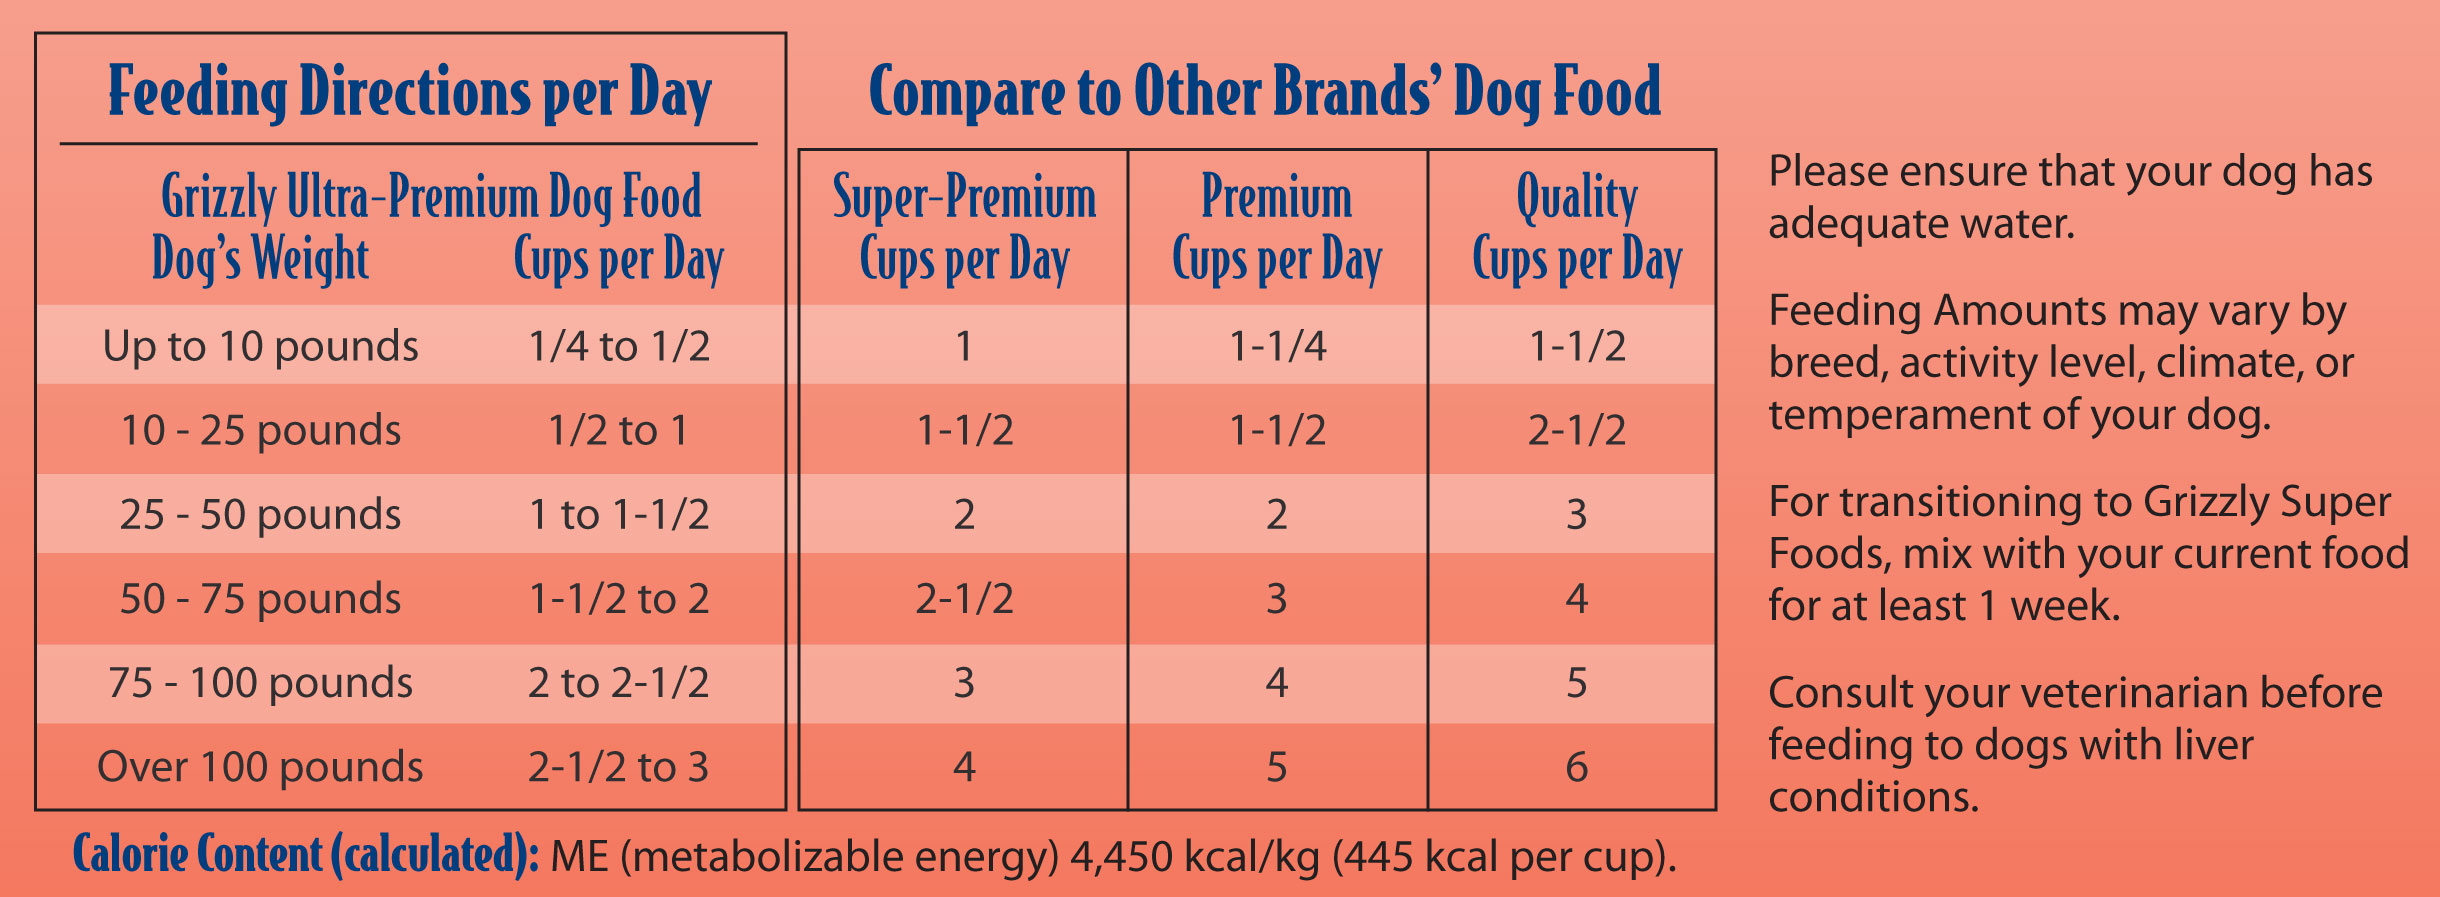 Grizzly Super Food Feeding Guideline